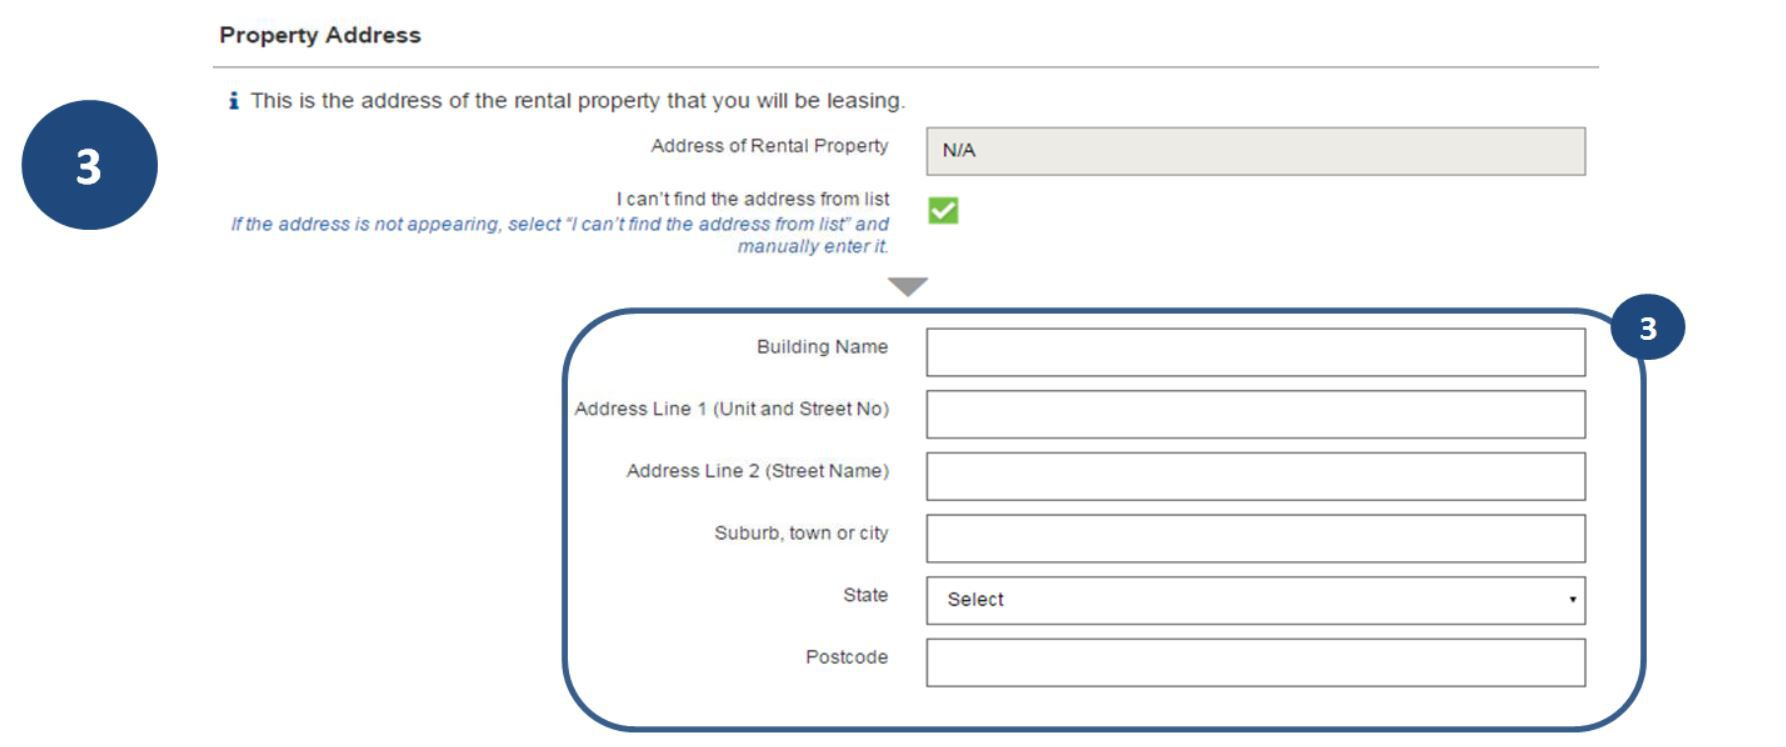 3. If the address does not appear, tick the 'I can't find address from list' box and enter all the details.